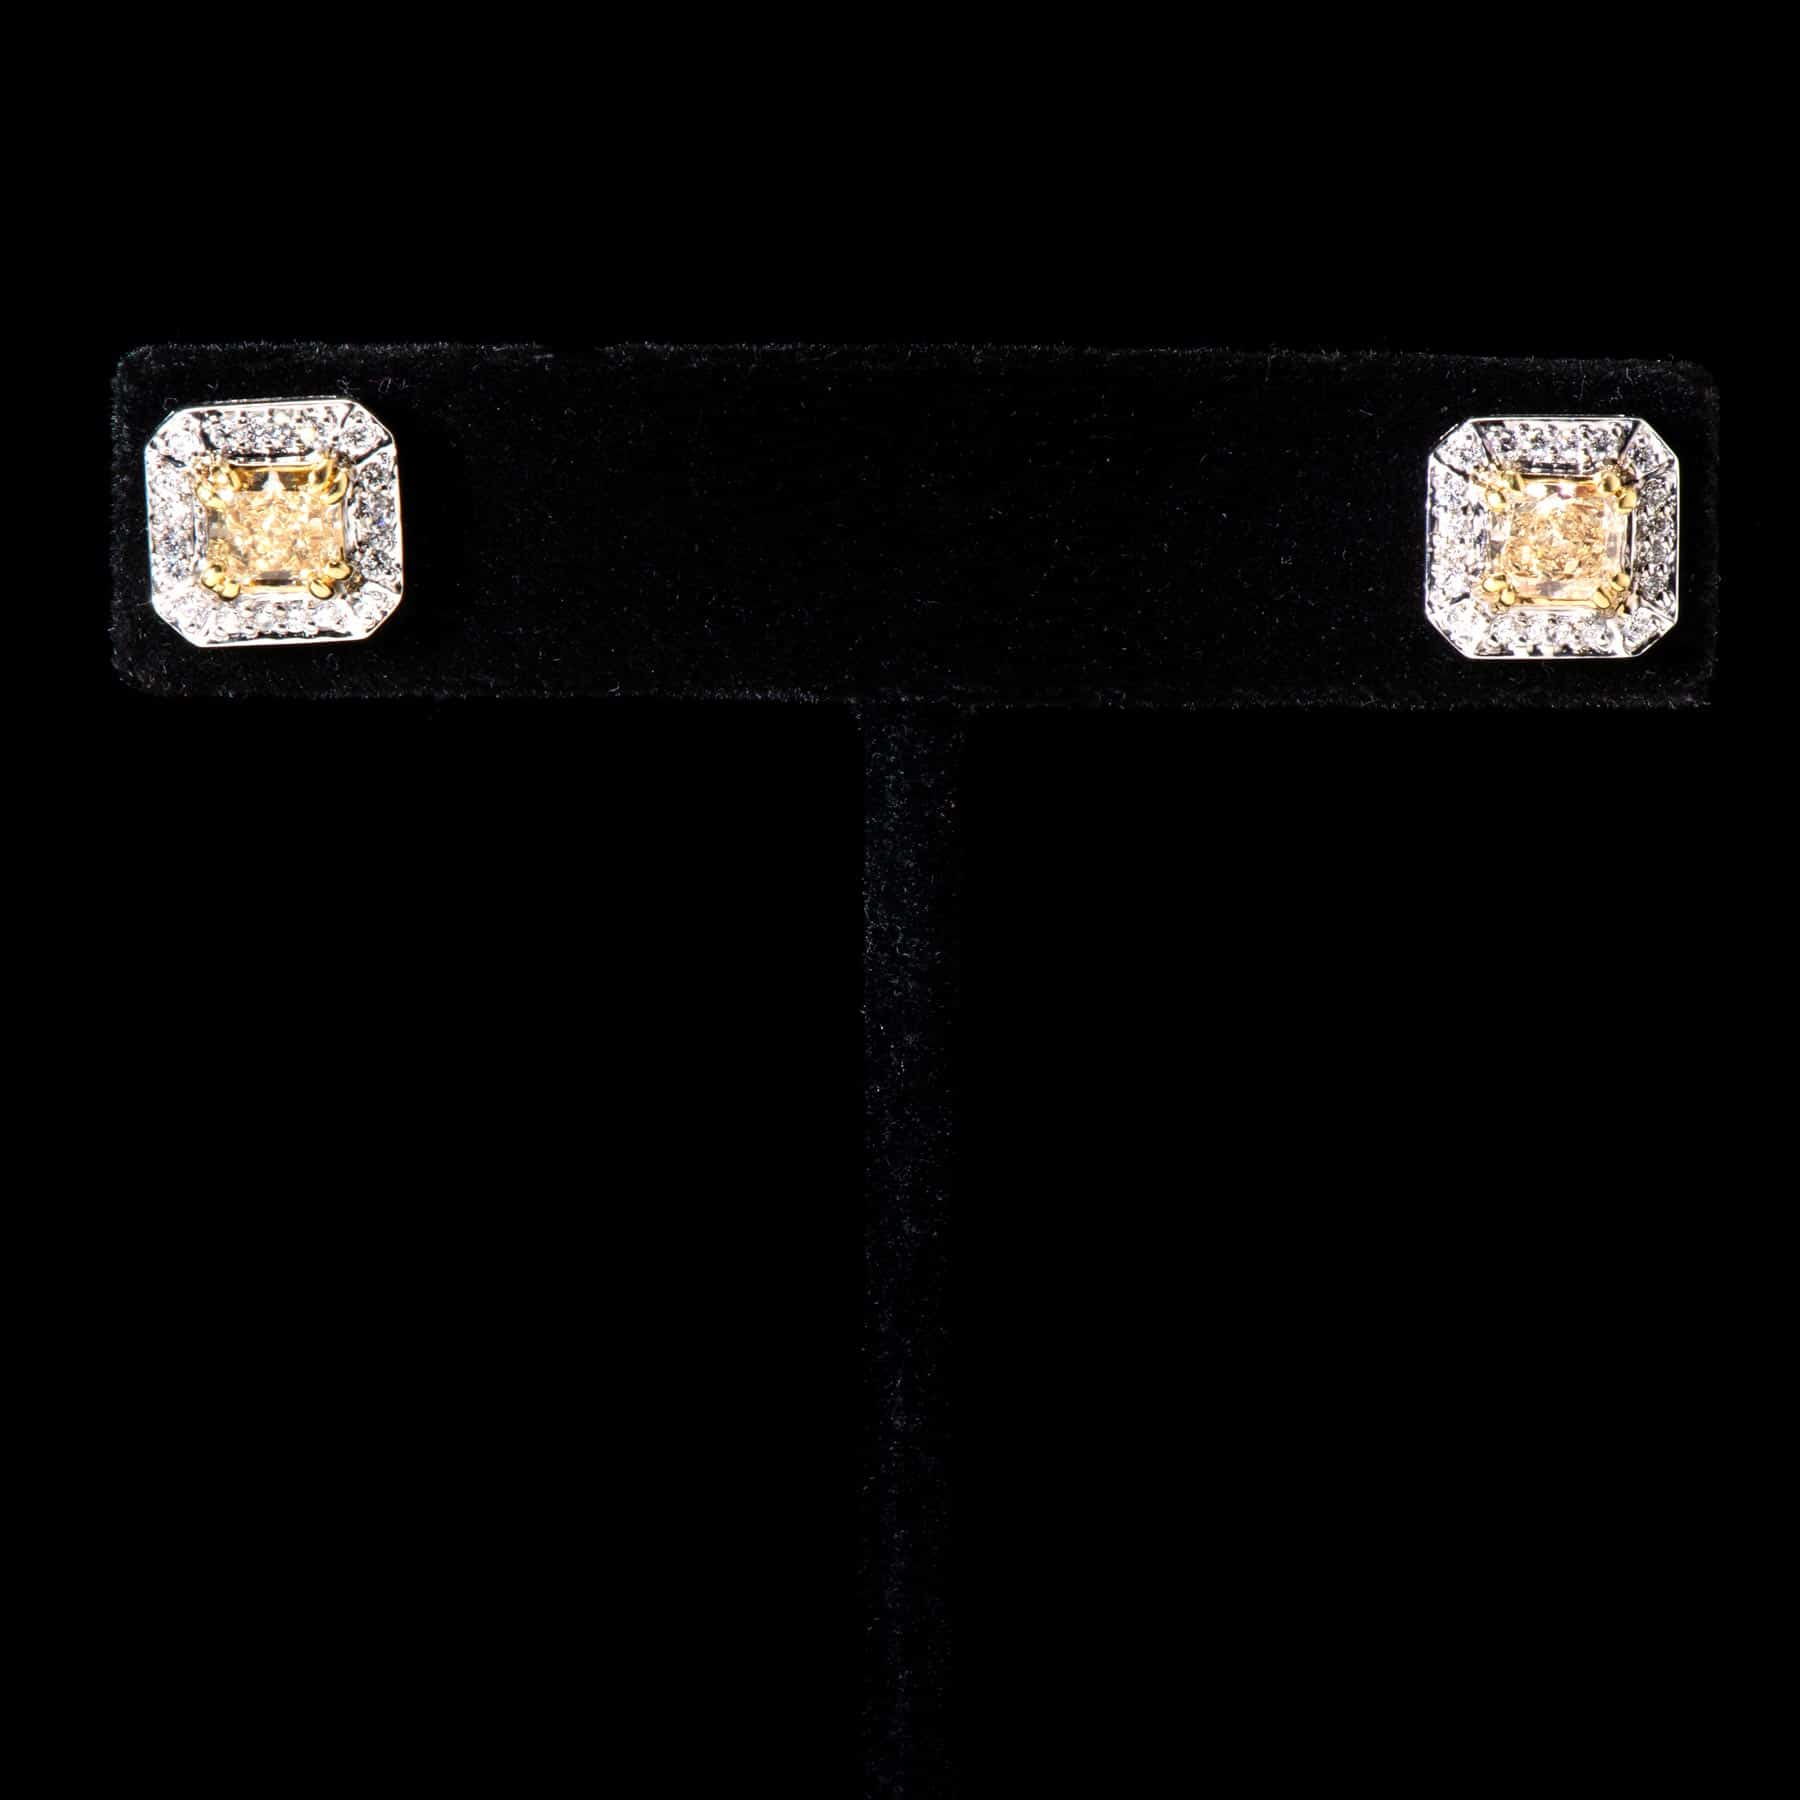 247-70MEXE 18K/W Center Y Dias. 5.03Cts 1.20Cts Studs